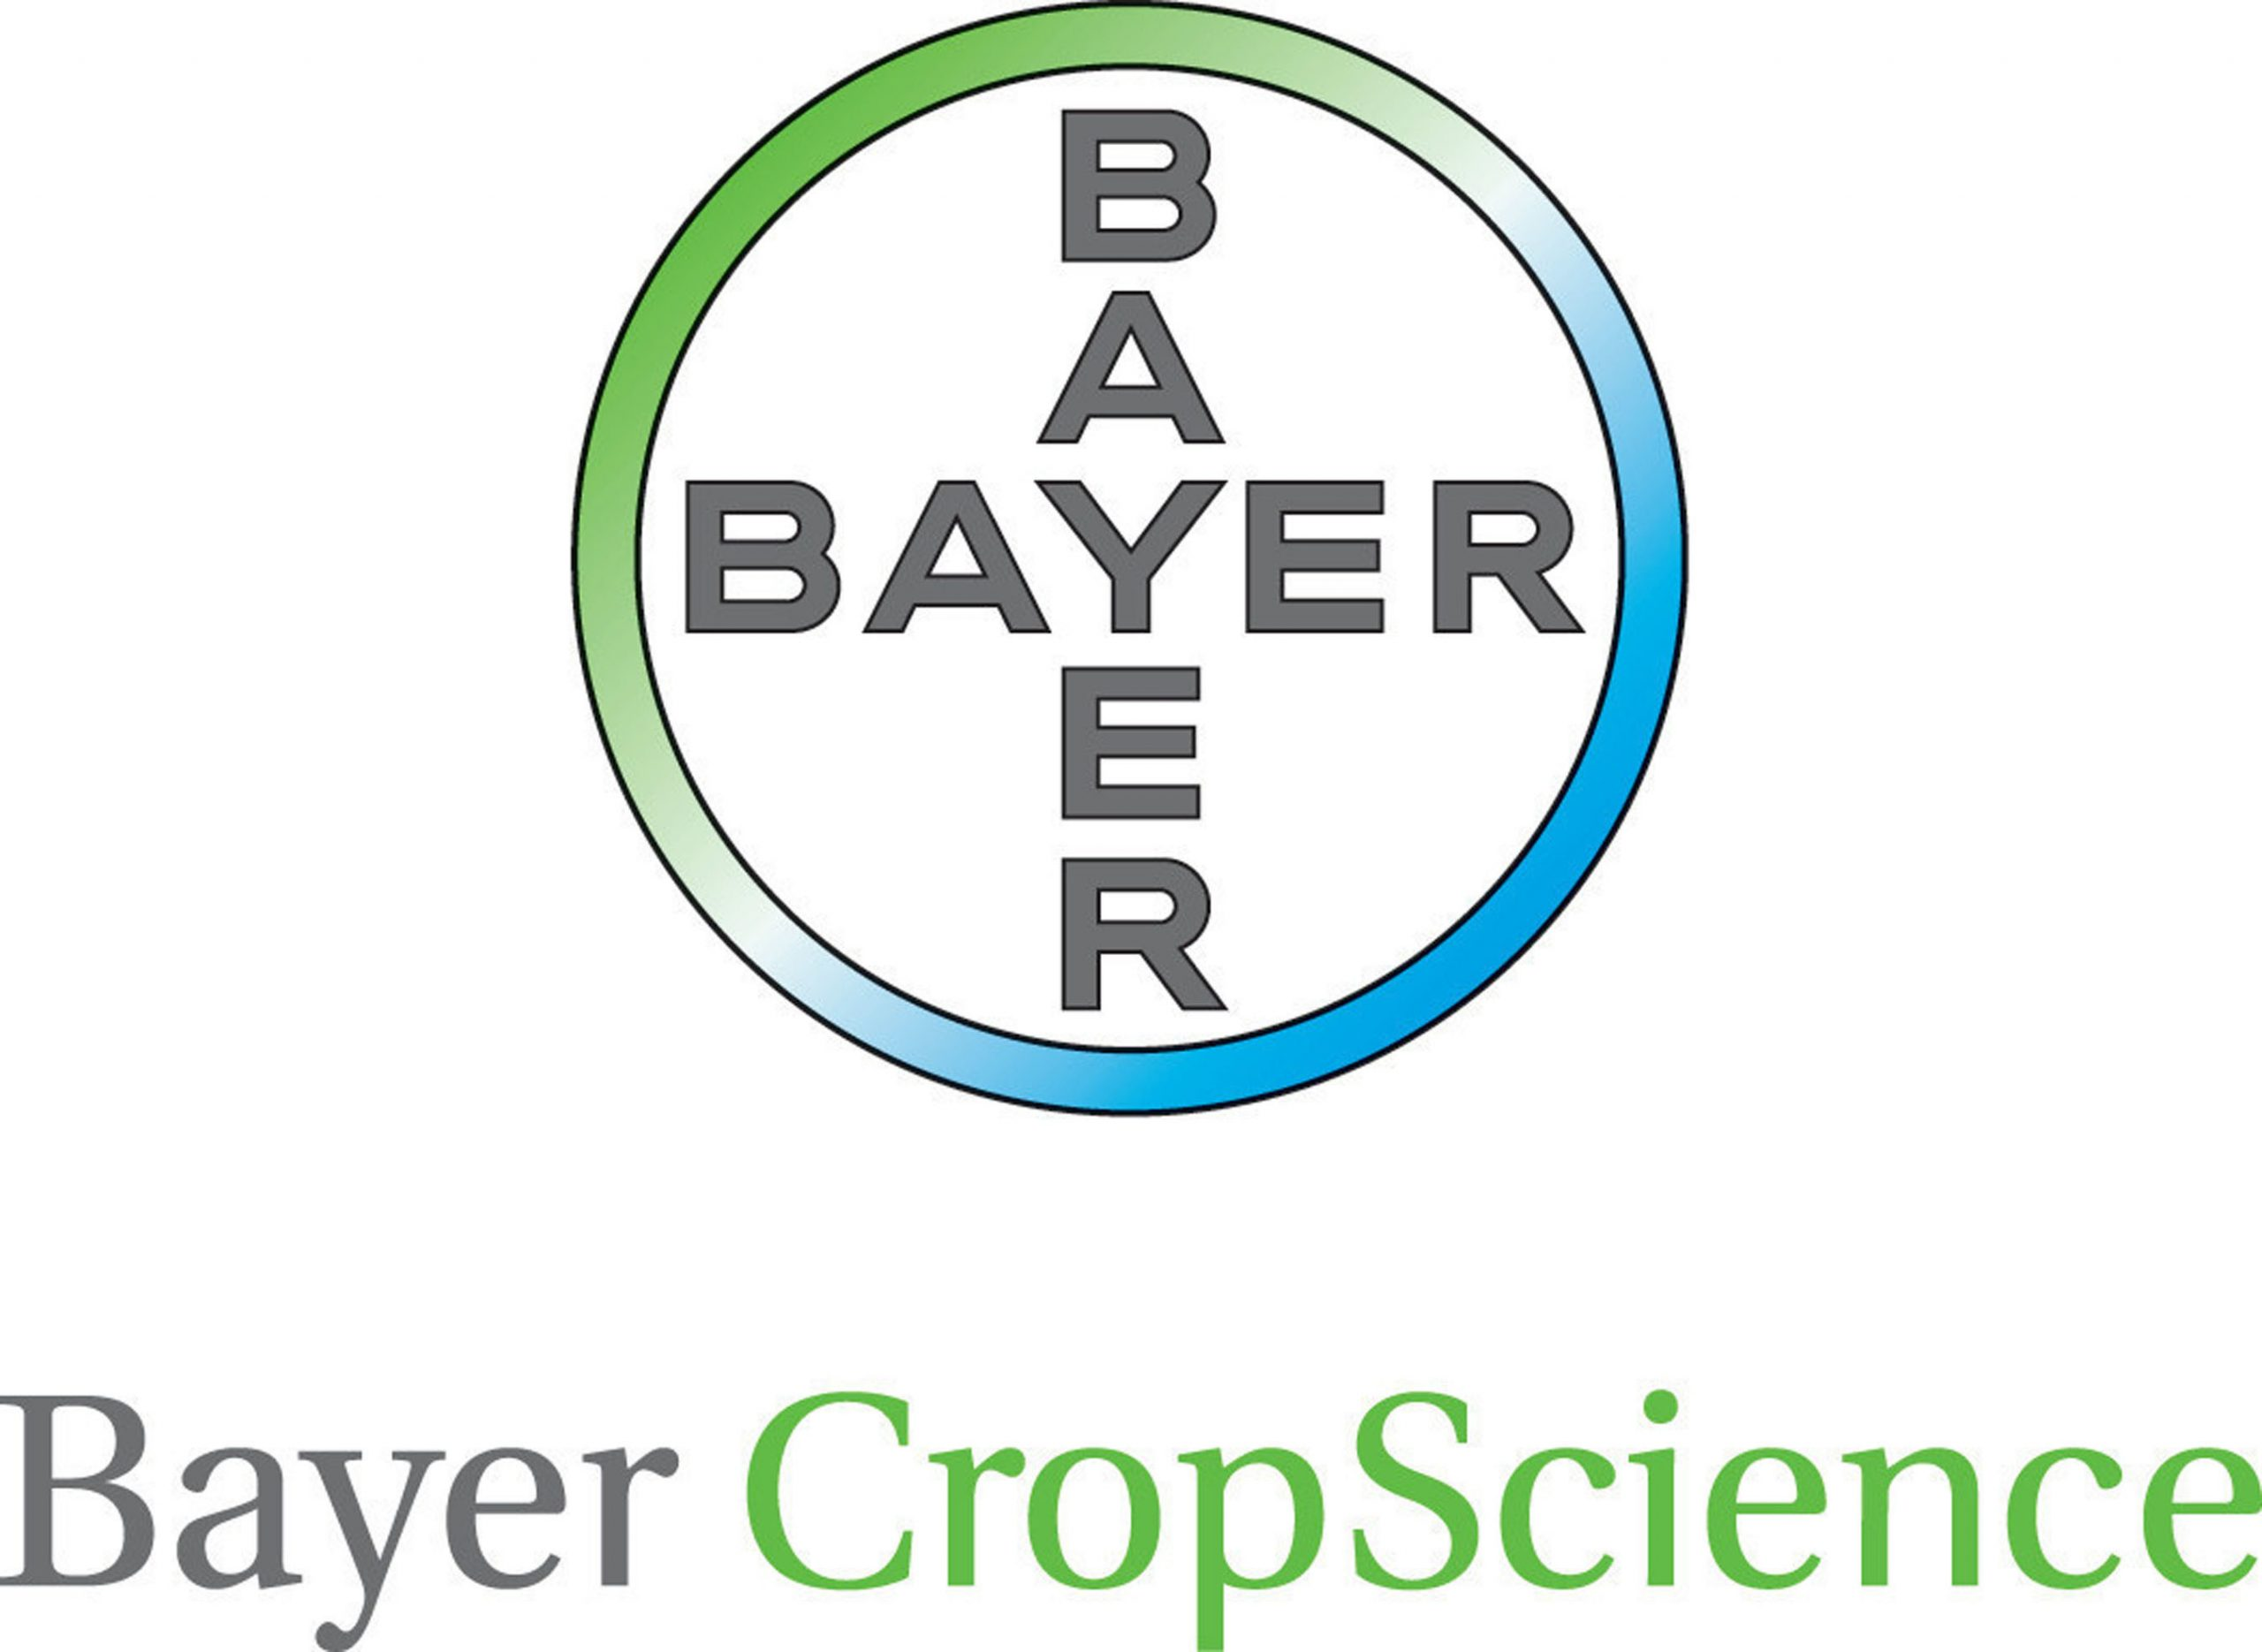 Bayer Crop Science's Partnership with 4-H